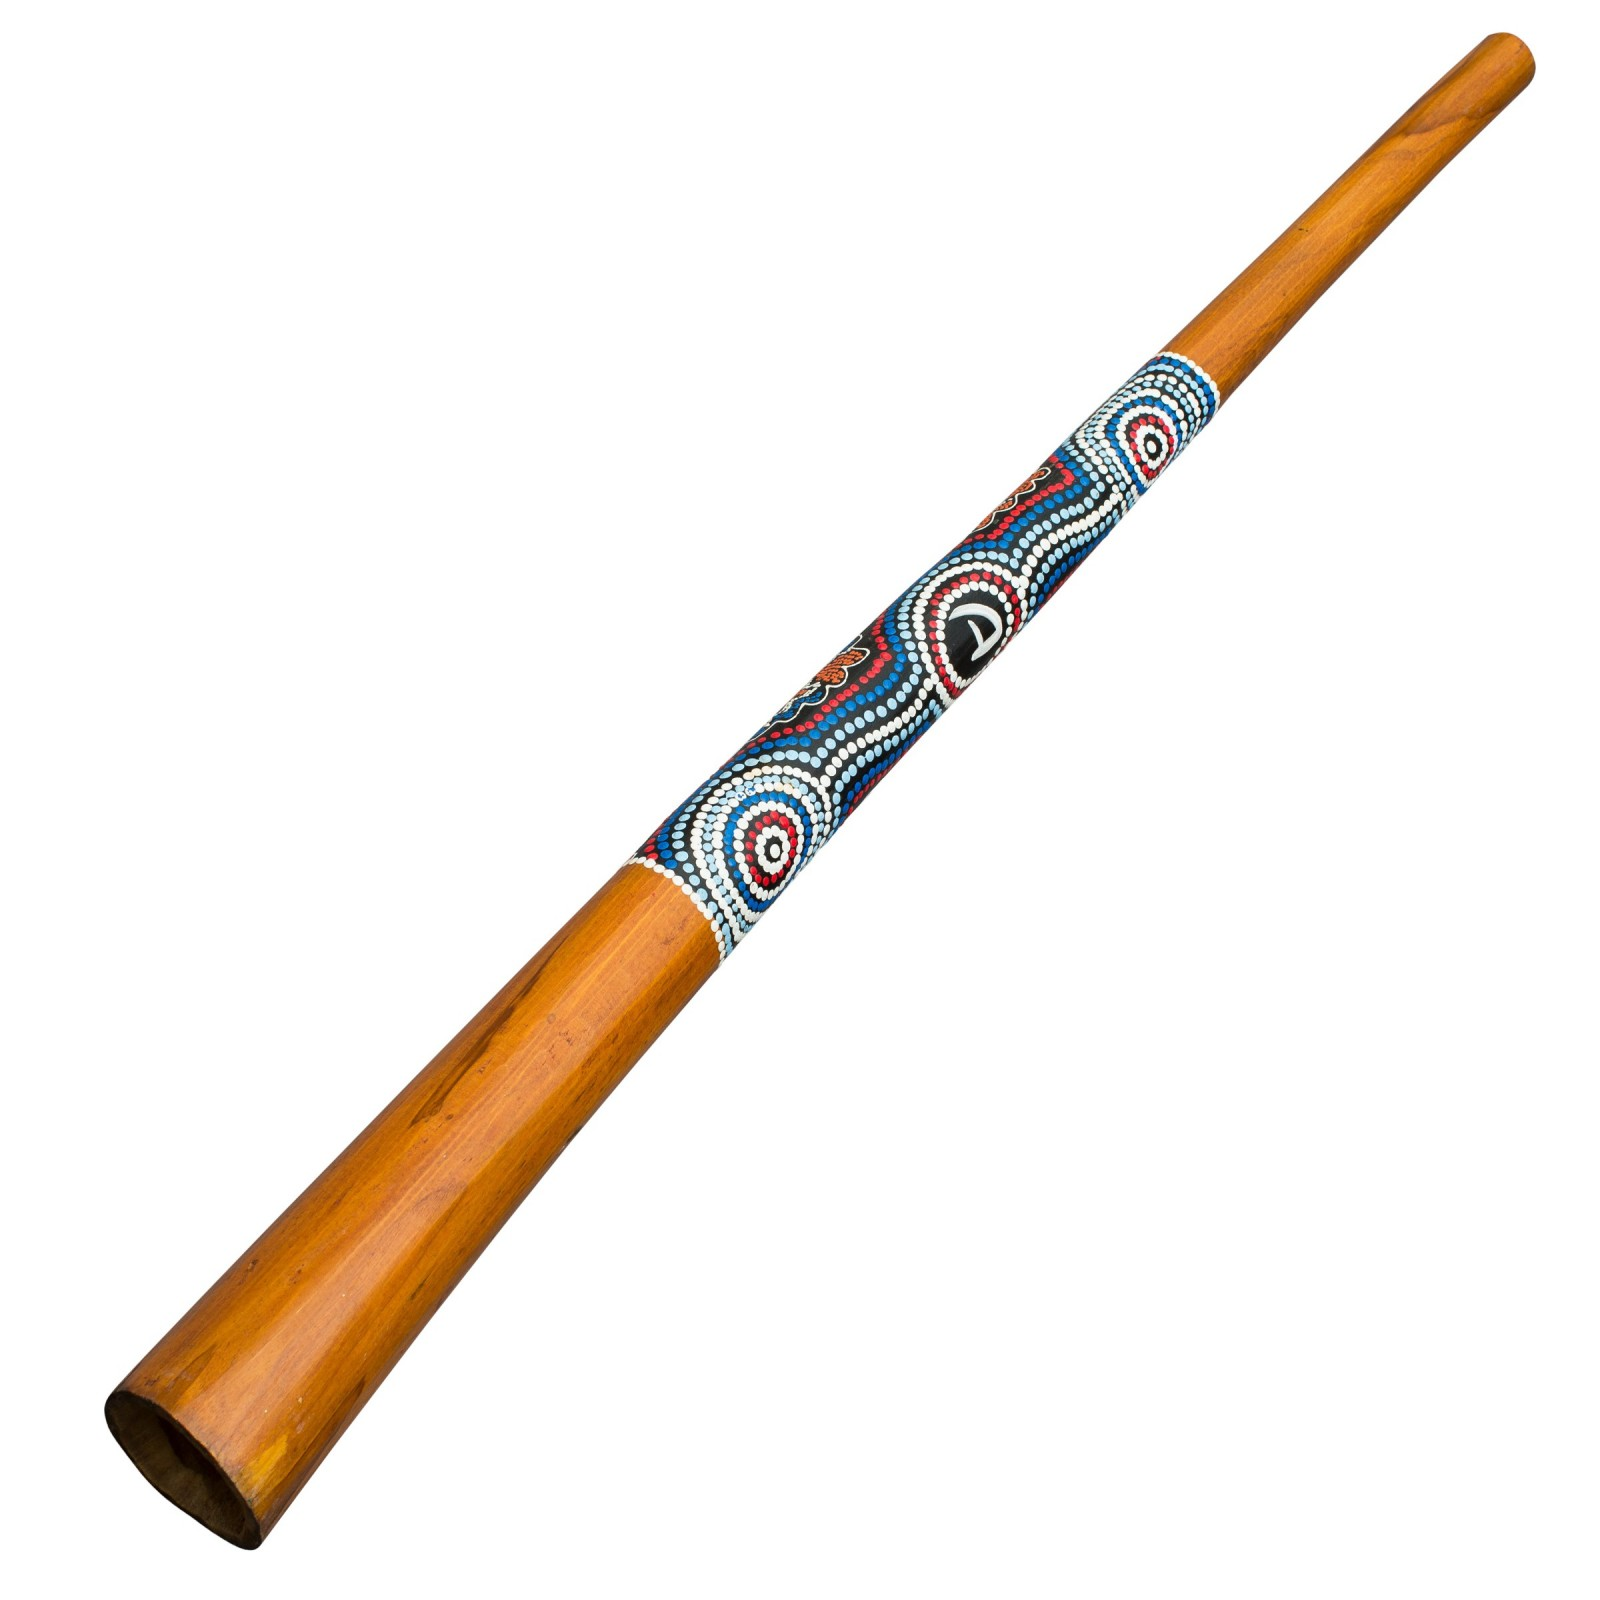 Didgeridoo 130cm wood | beginner